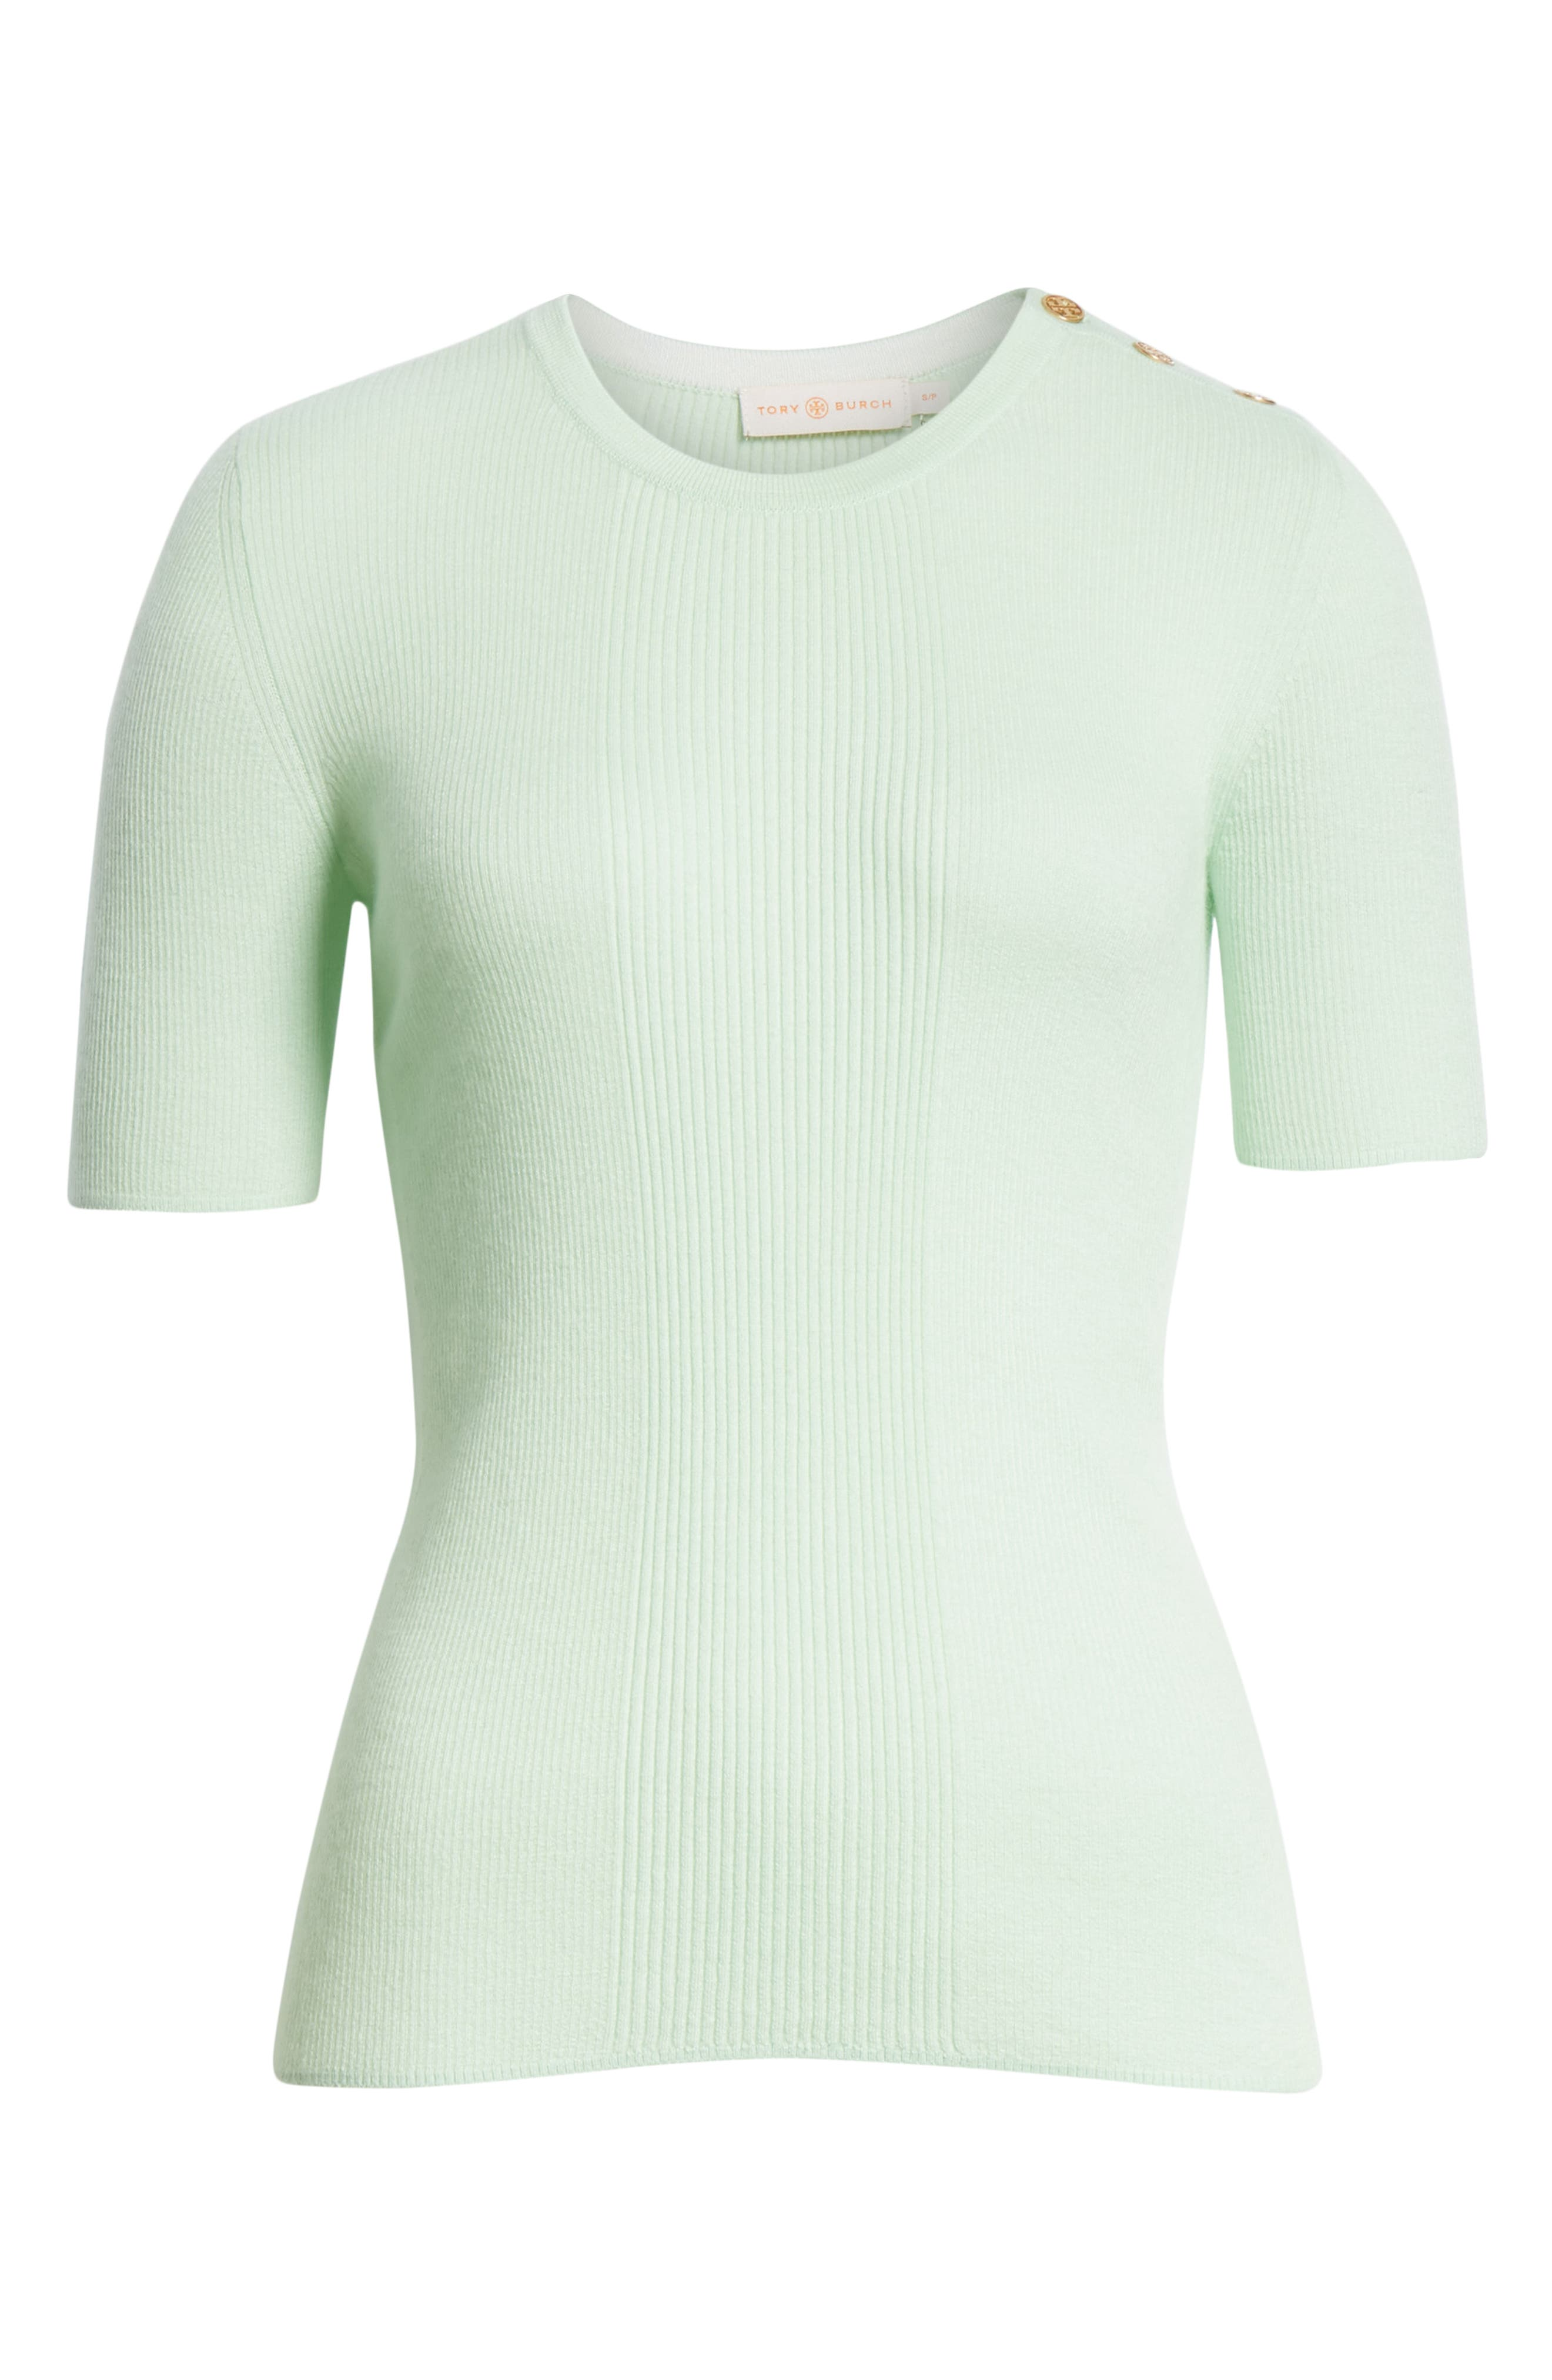 Taylor Ribbed Sweater,                             Alternate thumbnail 6, color,                             Crushed Mint